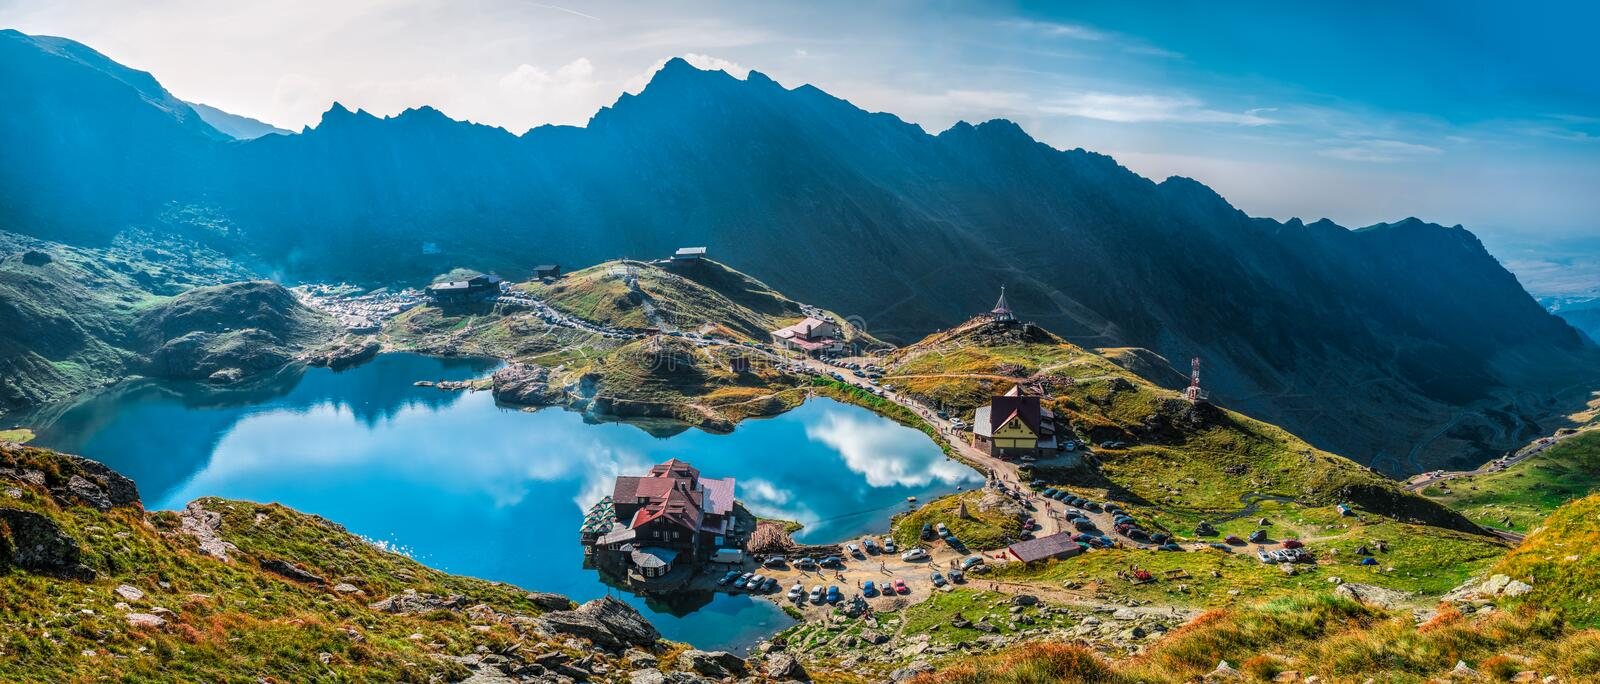 Balea Lake in Romania. Scenic view of Balea lake in the Fagaras mountains, CarÈ›iÈ™oara, Sibiu County, Romania royalty free stock image